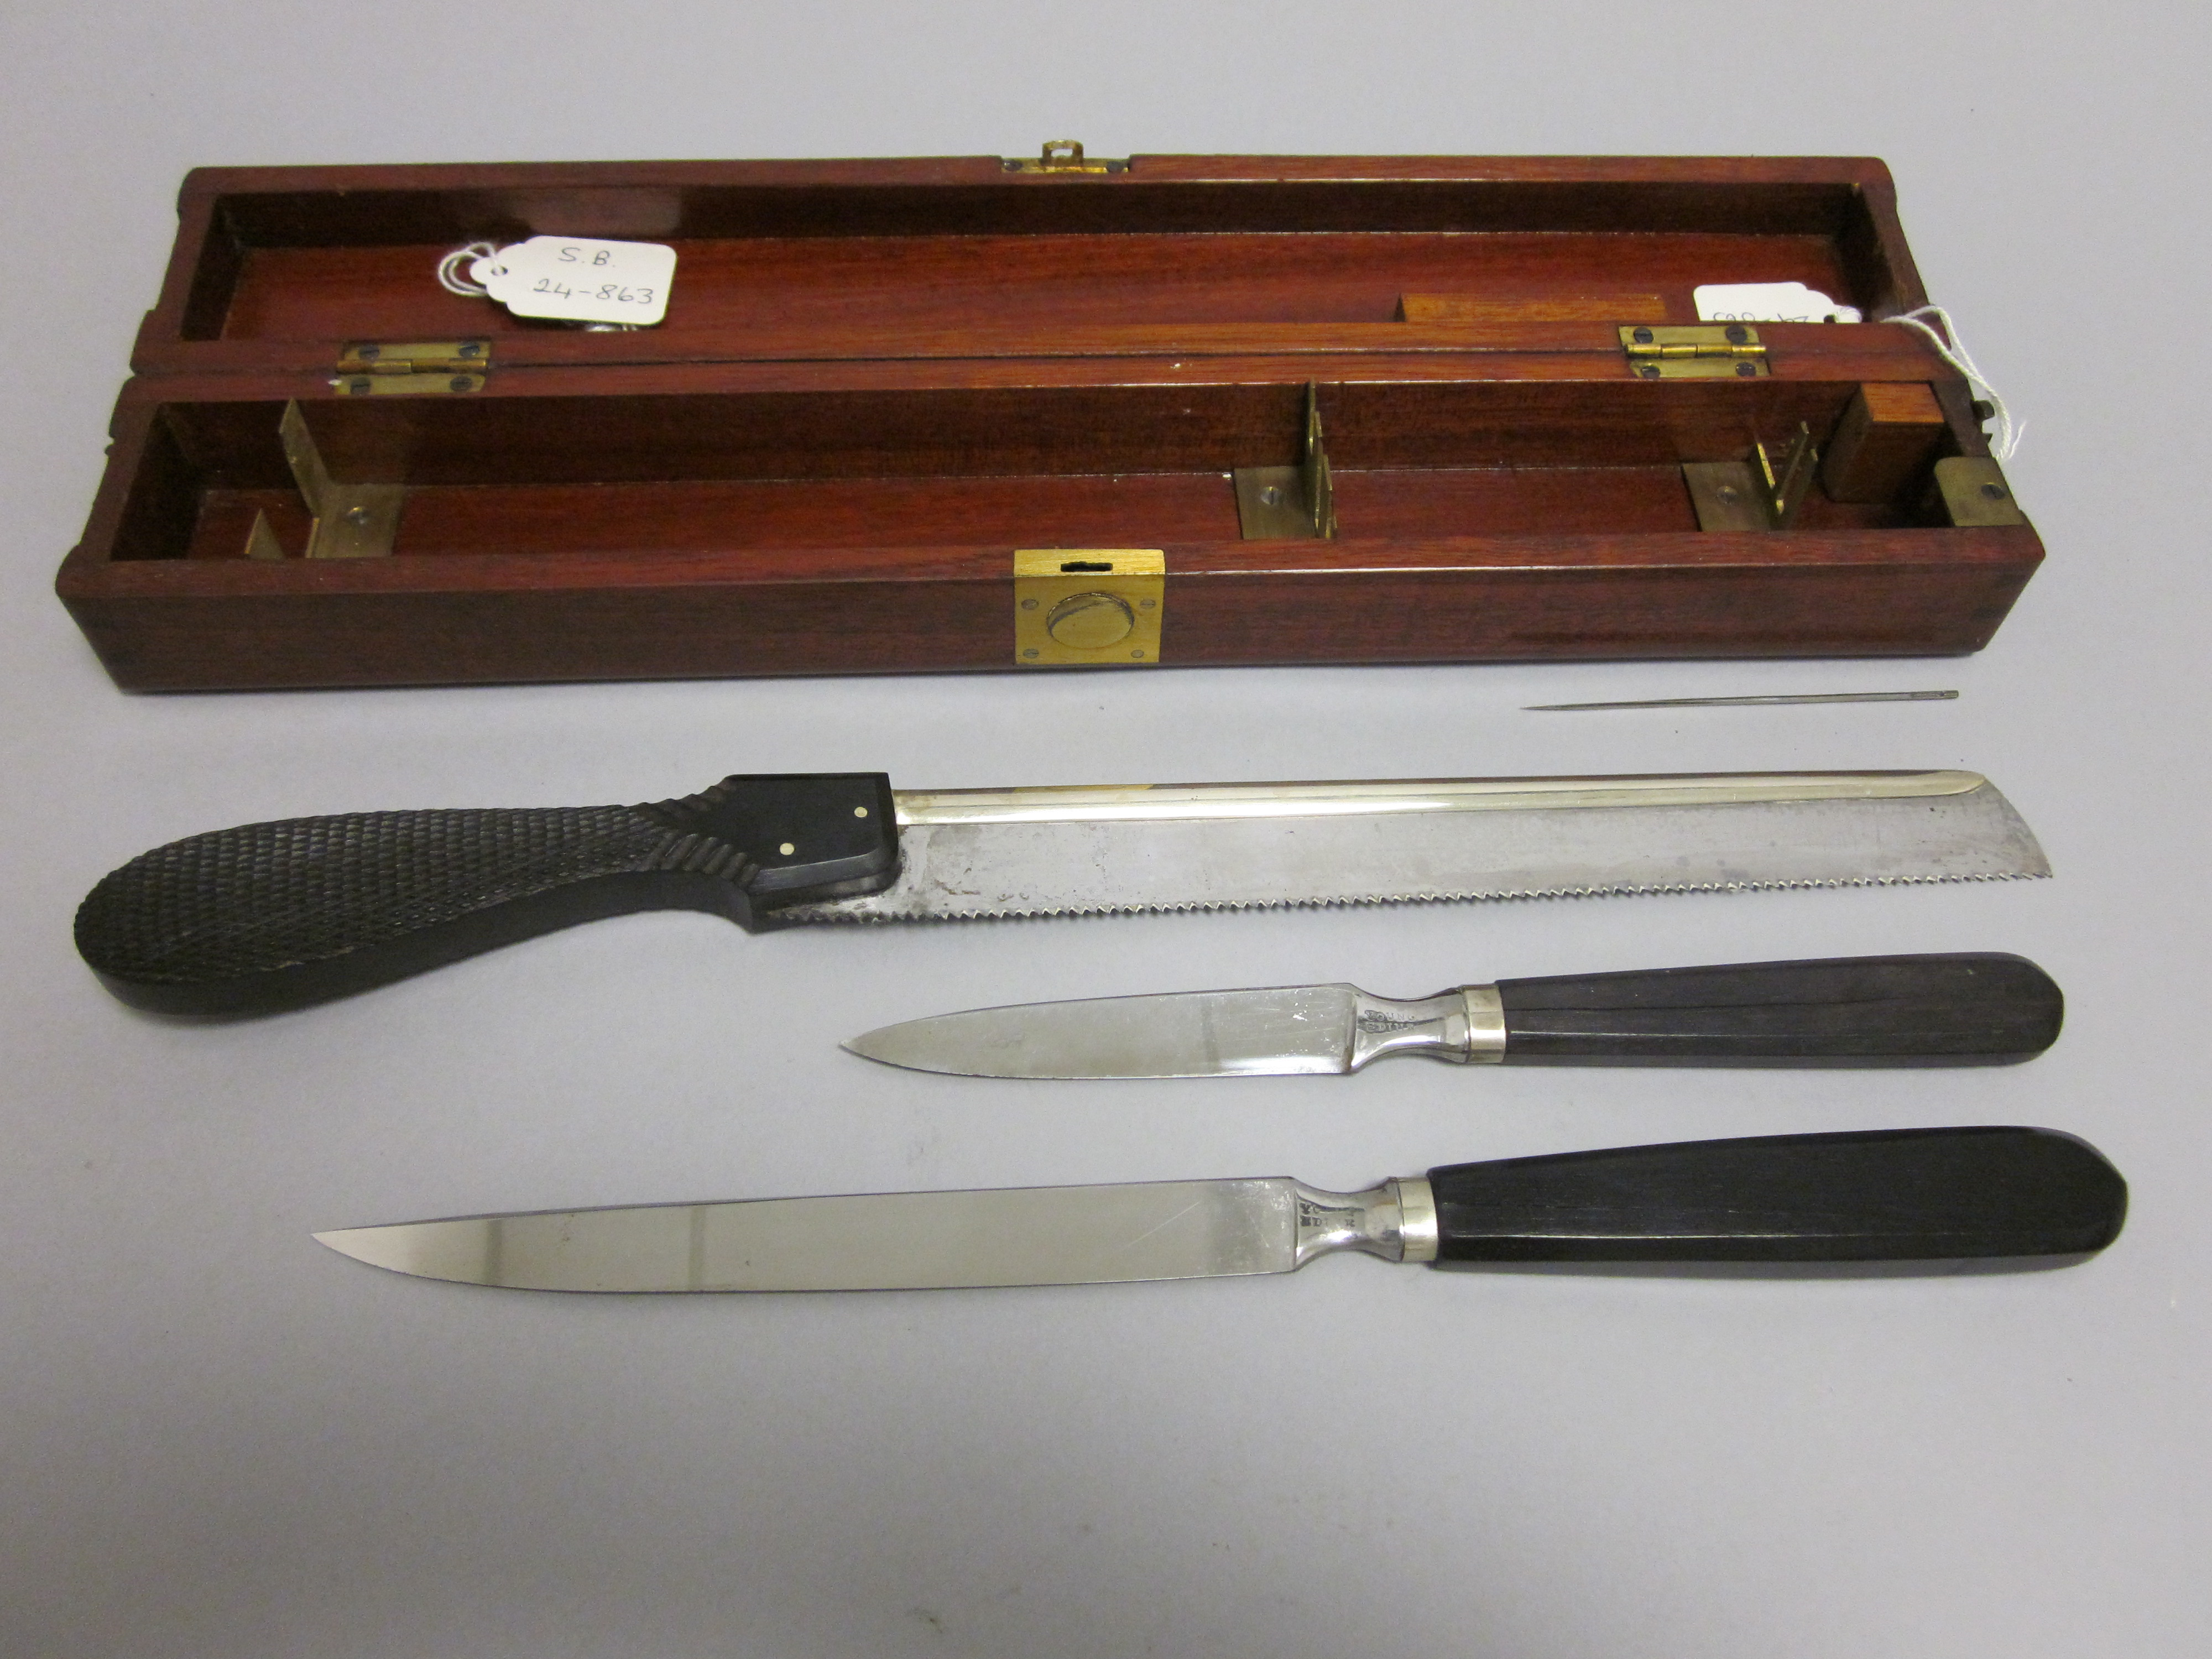 James Syme's Amputation knives and saw